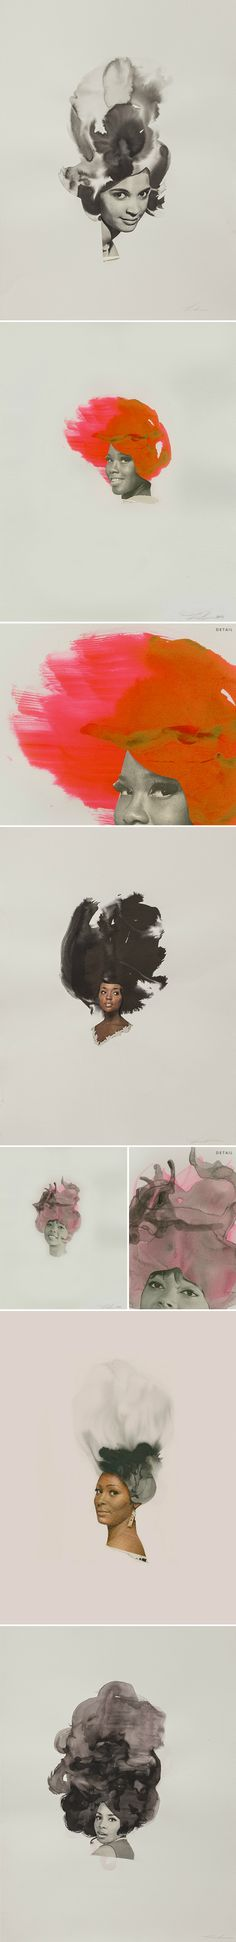 collage & ink by lorna simpson <3